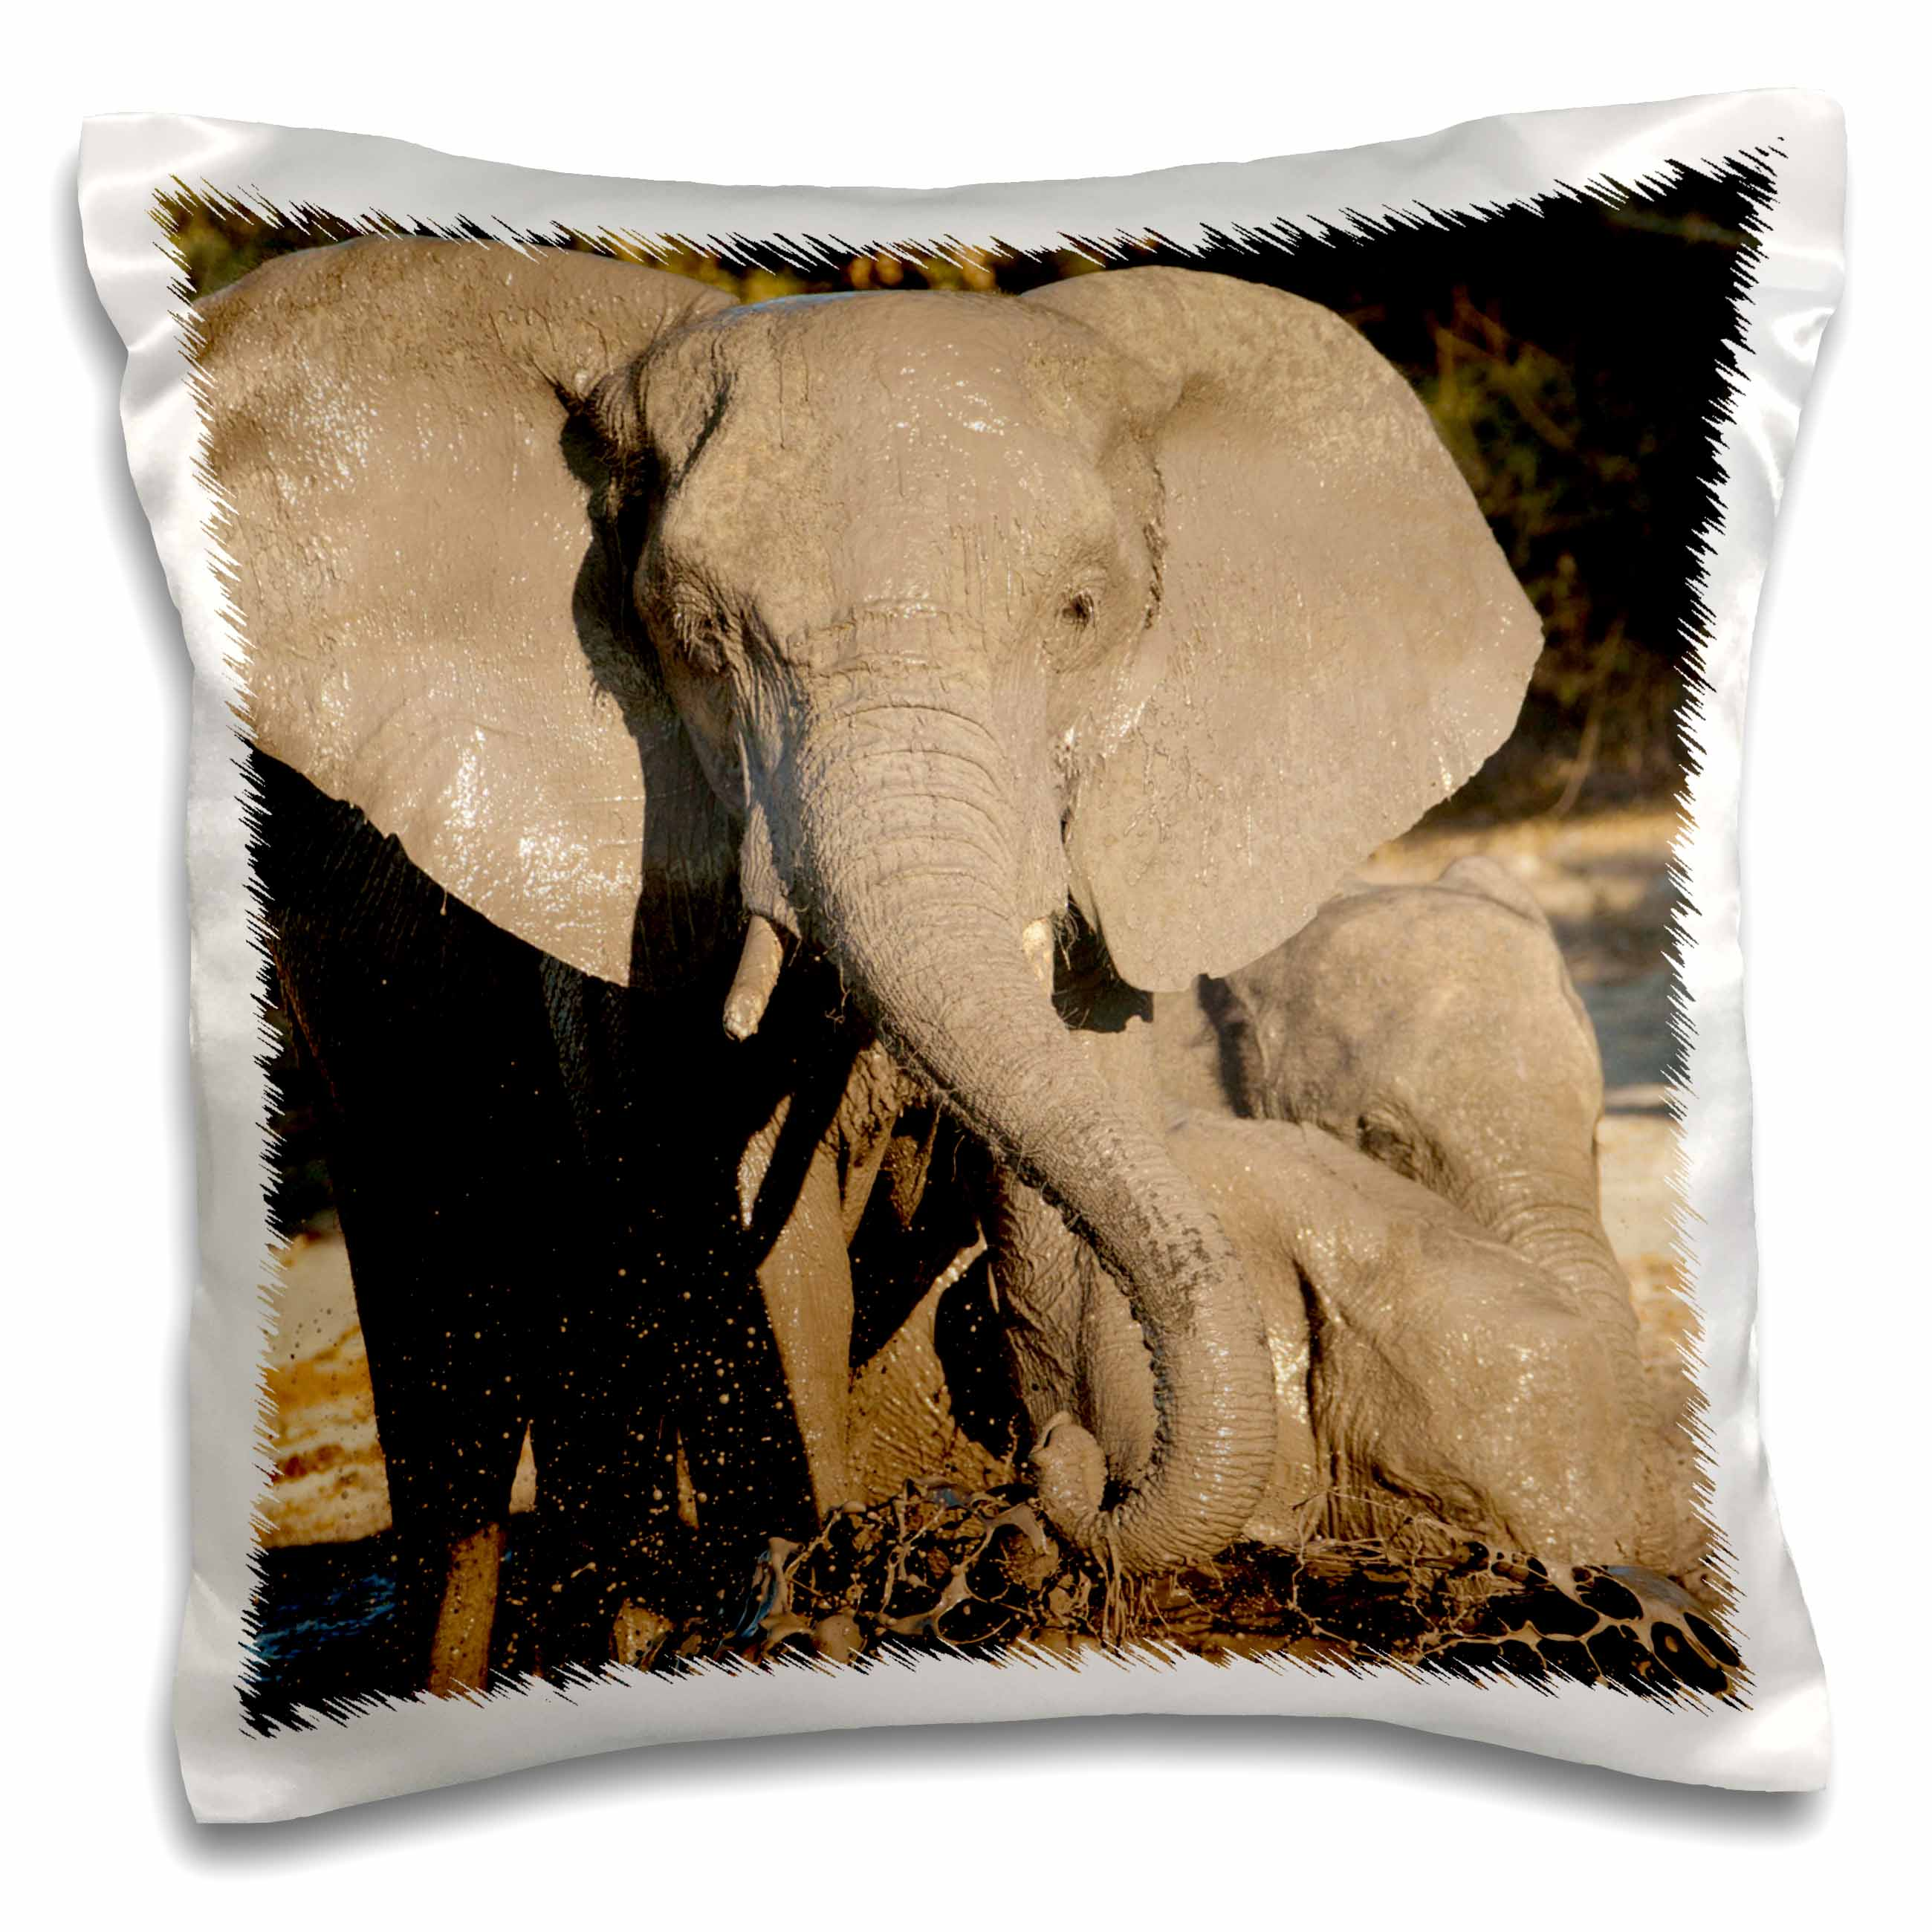 3dRose Botswana, Chobe Park, African Elephant - AF05 JMC0000 - Joe and Mary Ann McDonald, Pillow Case, 16 by 16-inch